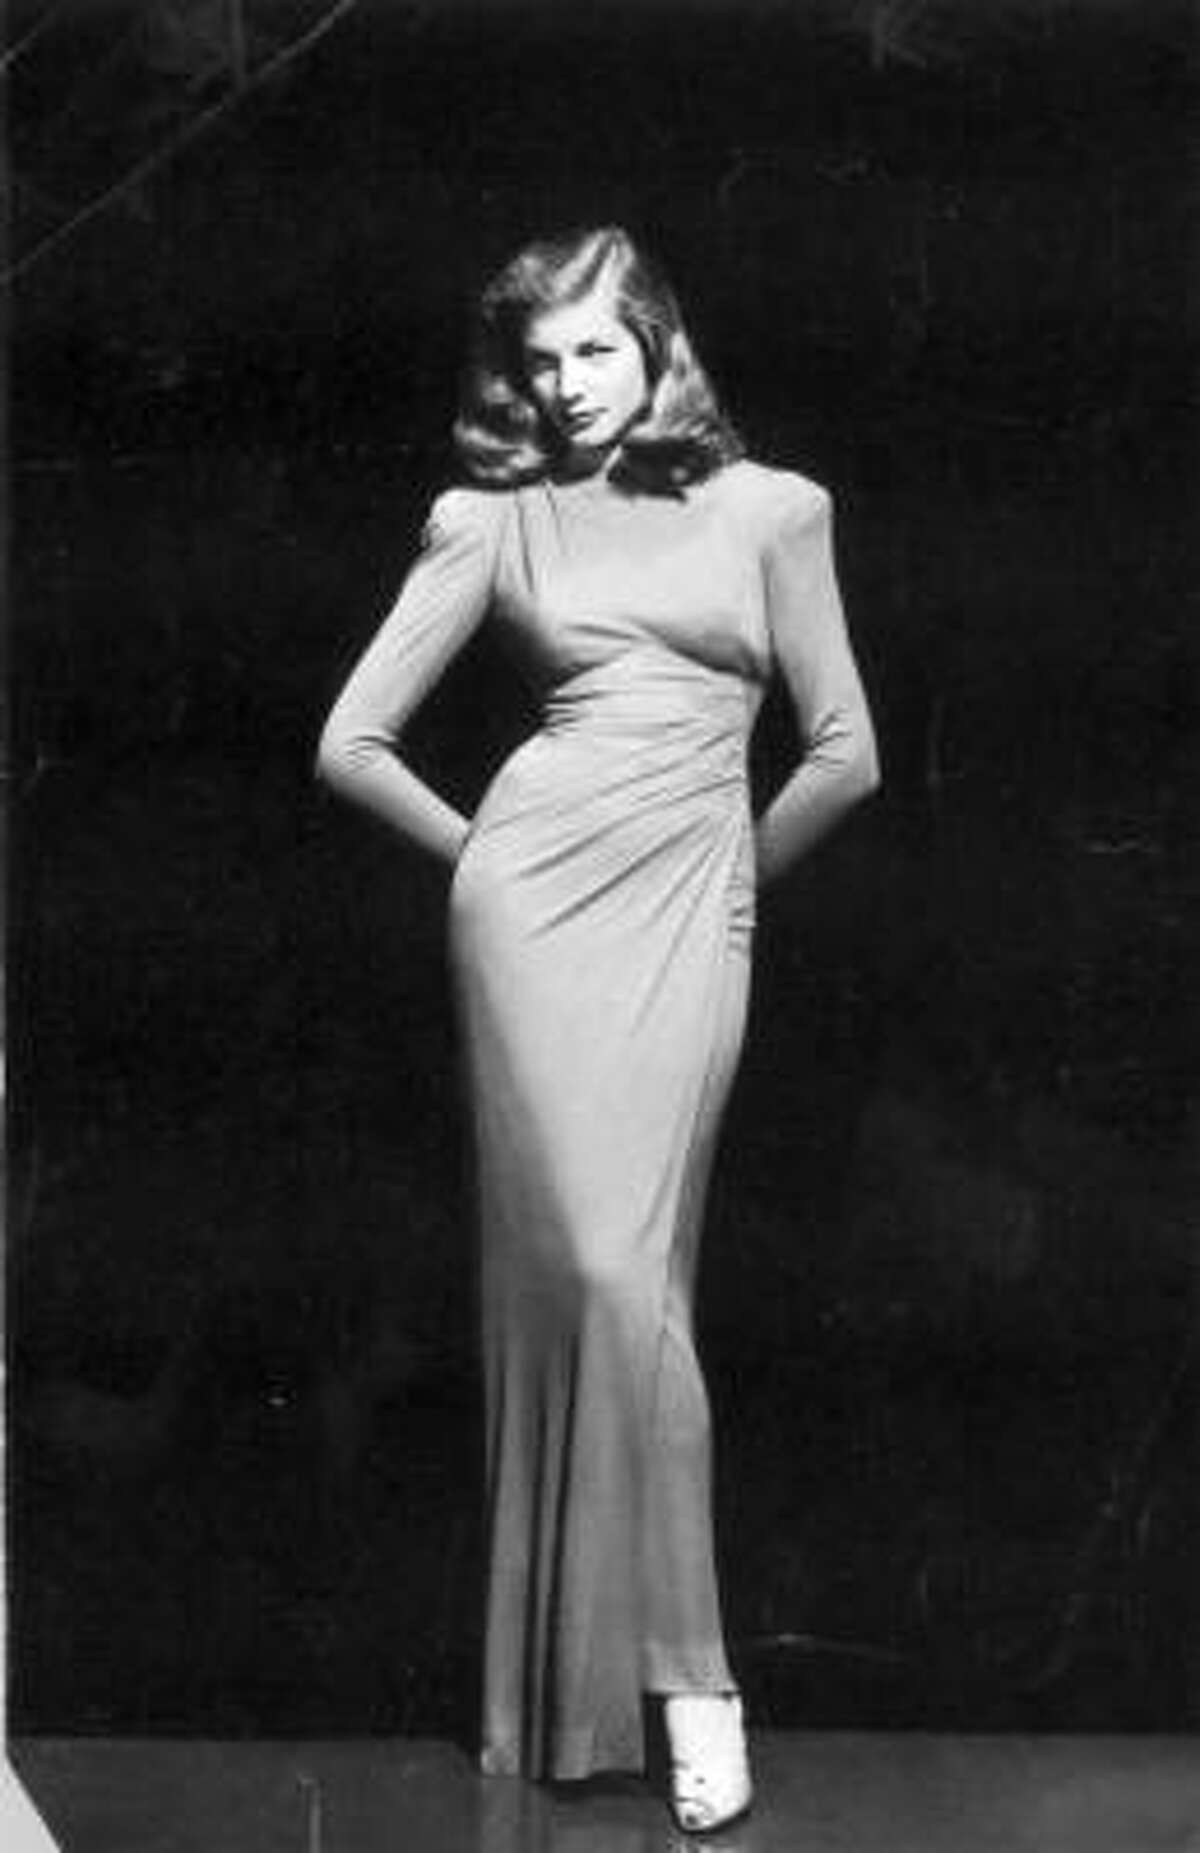 In 1999, Bacall was ranked as one of the 25 greatest female stars of all time by the American Film Institute.